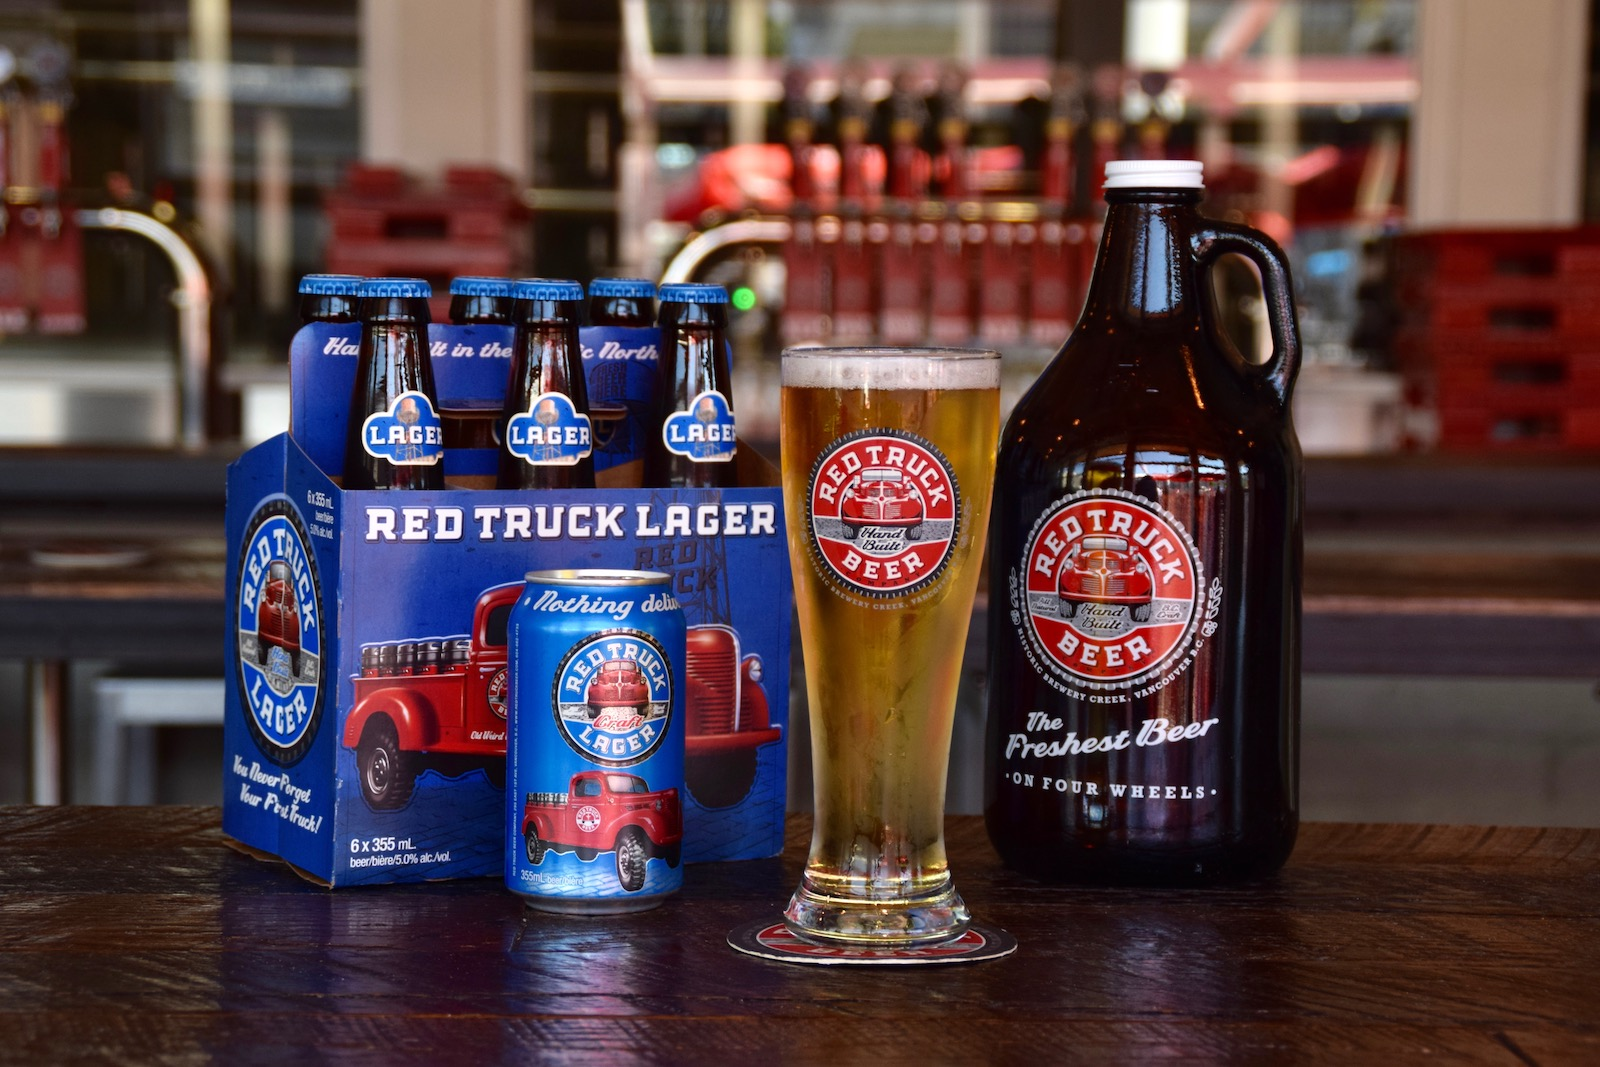 Red Truck Lager awarded Silver Medal at the 2017 Canadian Brewing Awards